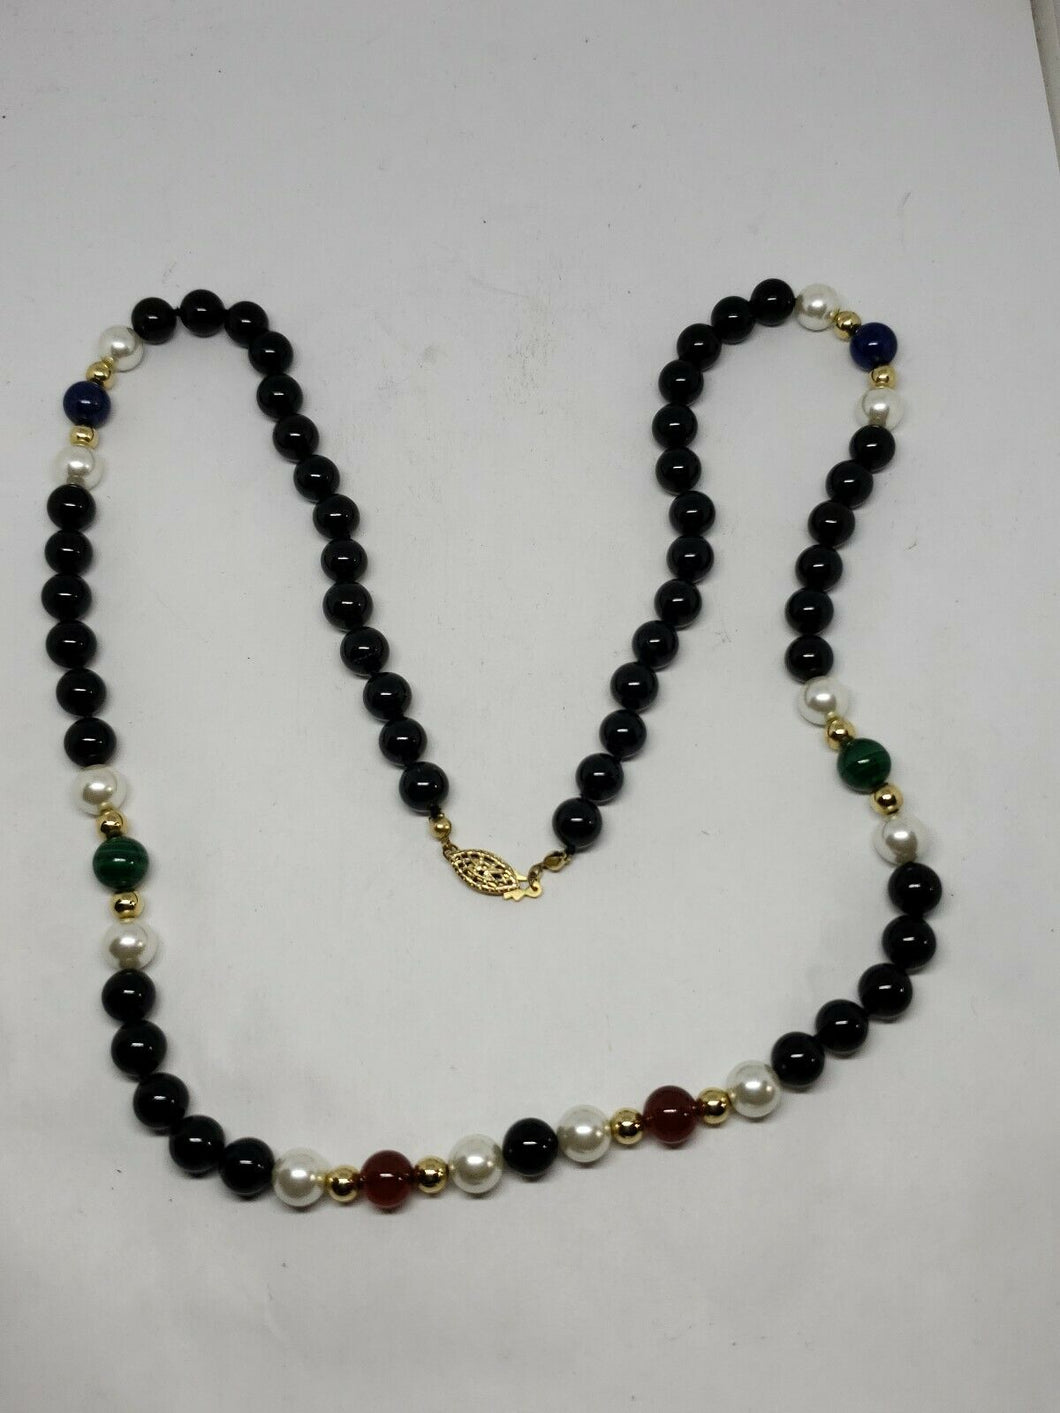 Vintage 1/20 14k Gold Filled Black Onyx Multistone Beaded Strand Necklace 26